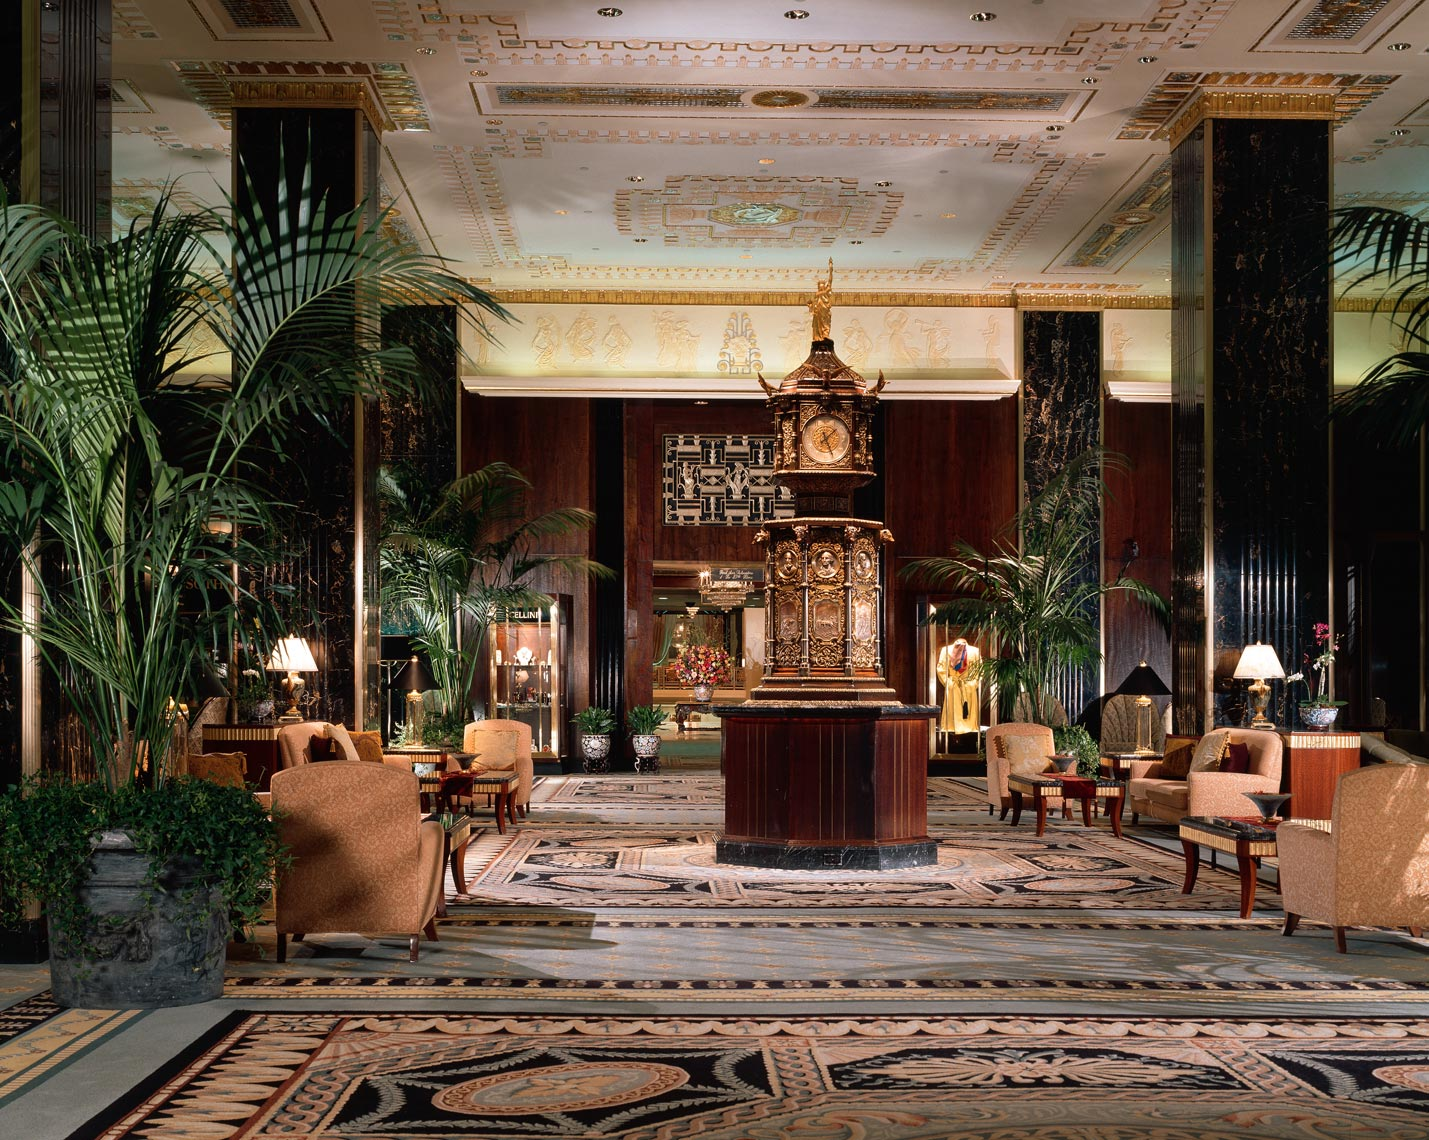 Main Lobby, Waldorf=Astoria, Park Avenue, New York, Interior Design by Kenneth E. Hurd & Associates